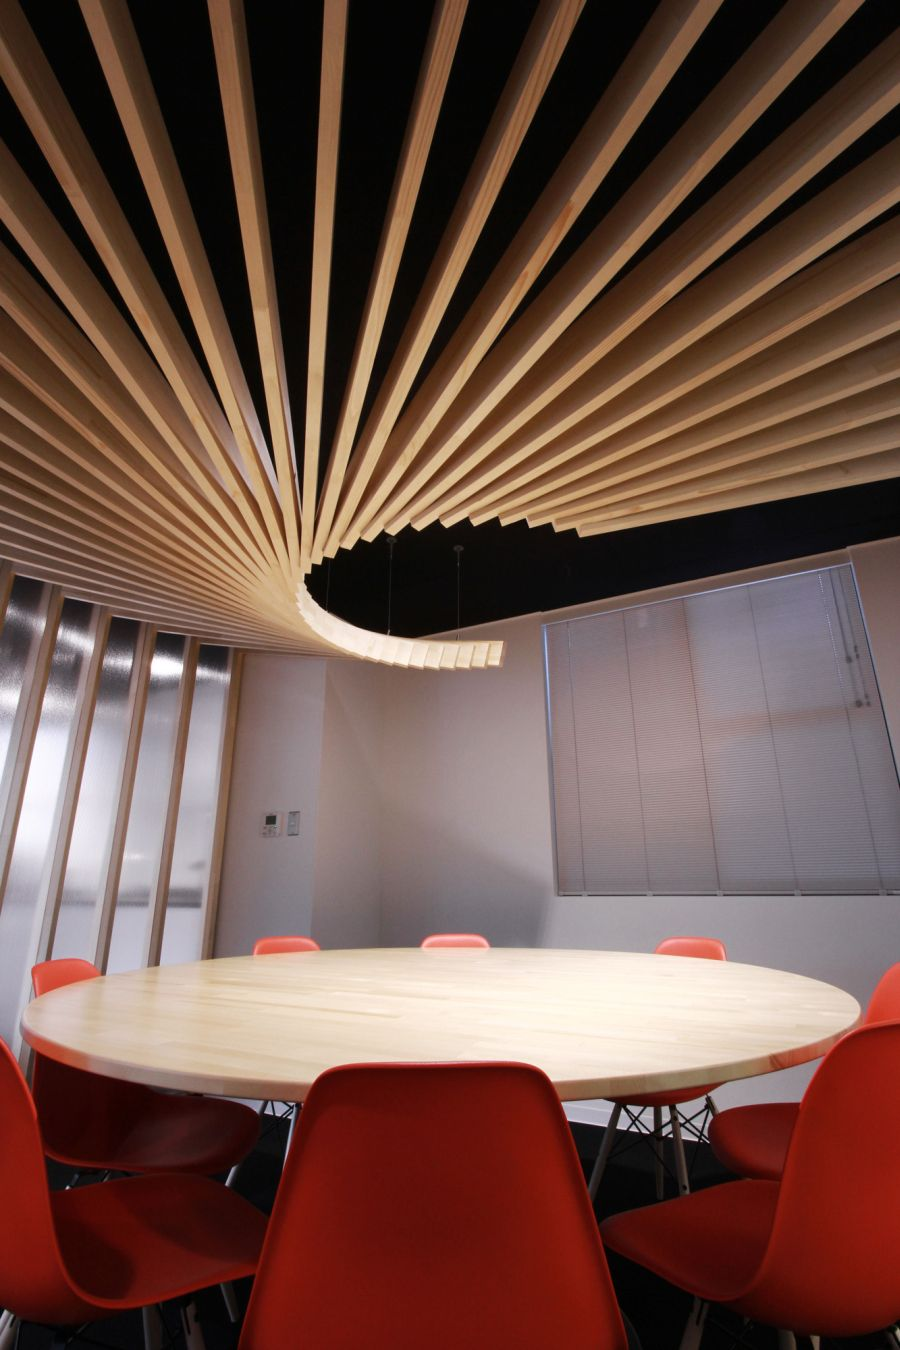 Sophisticated Wavy Wooden Ceiling That Invite Memorable